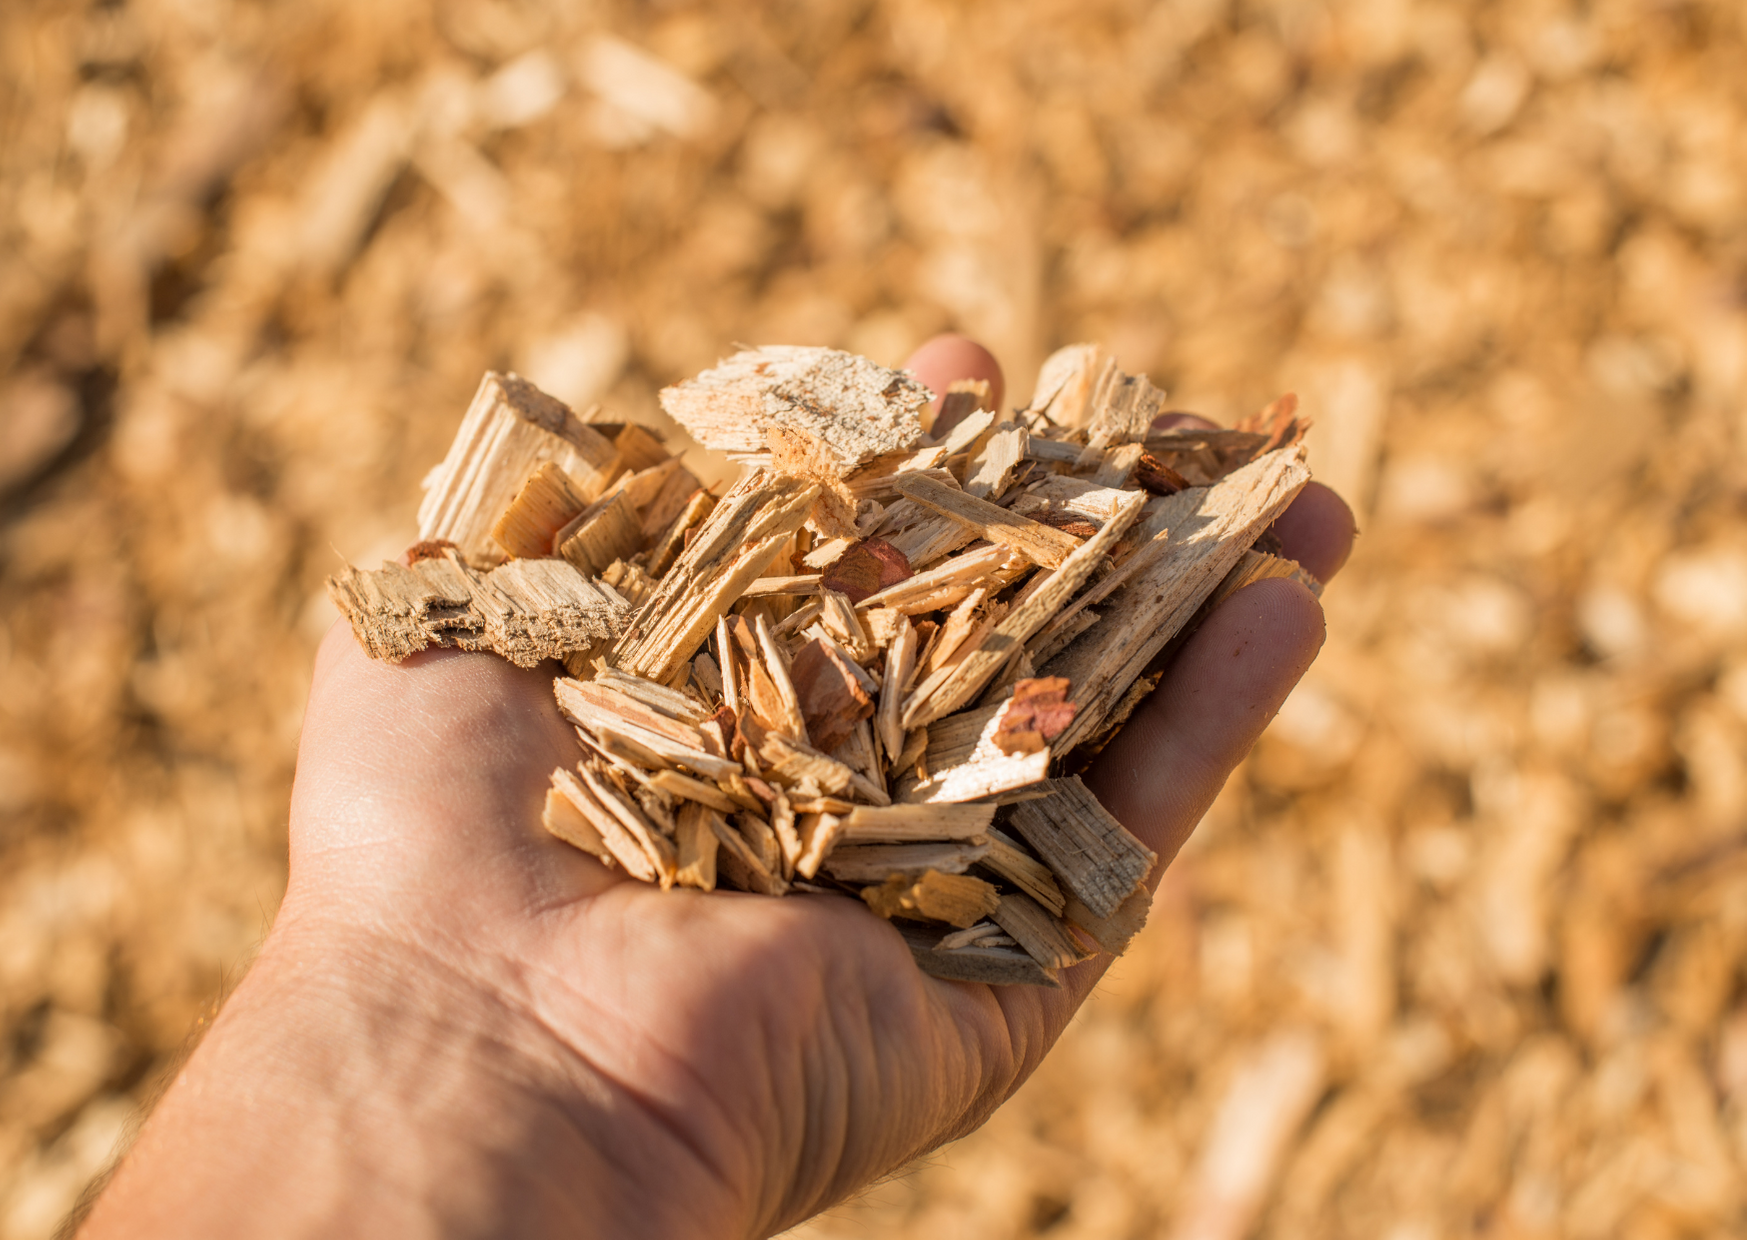 wood chip in a hand